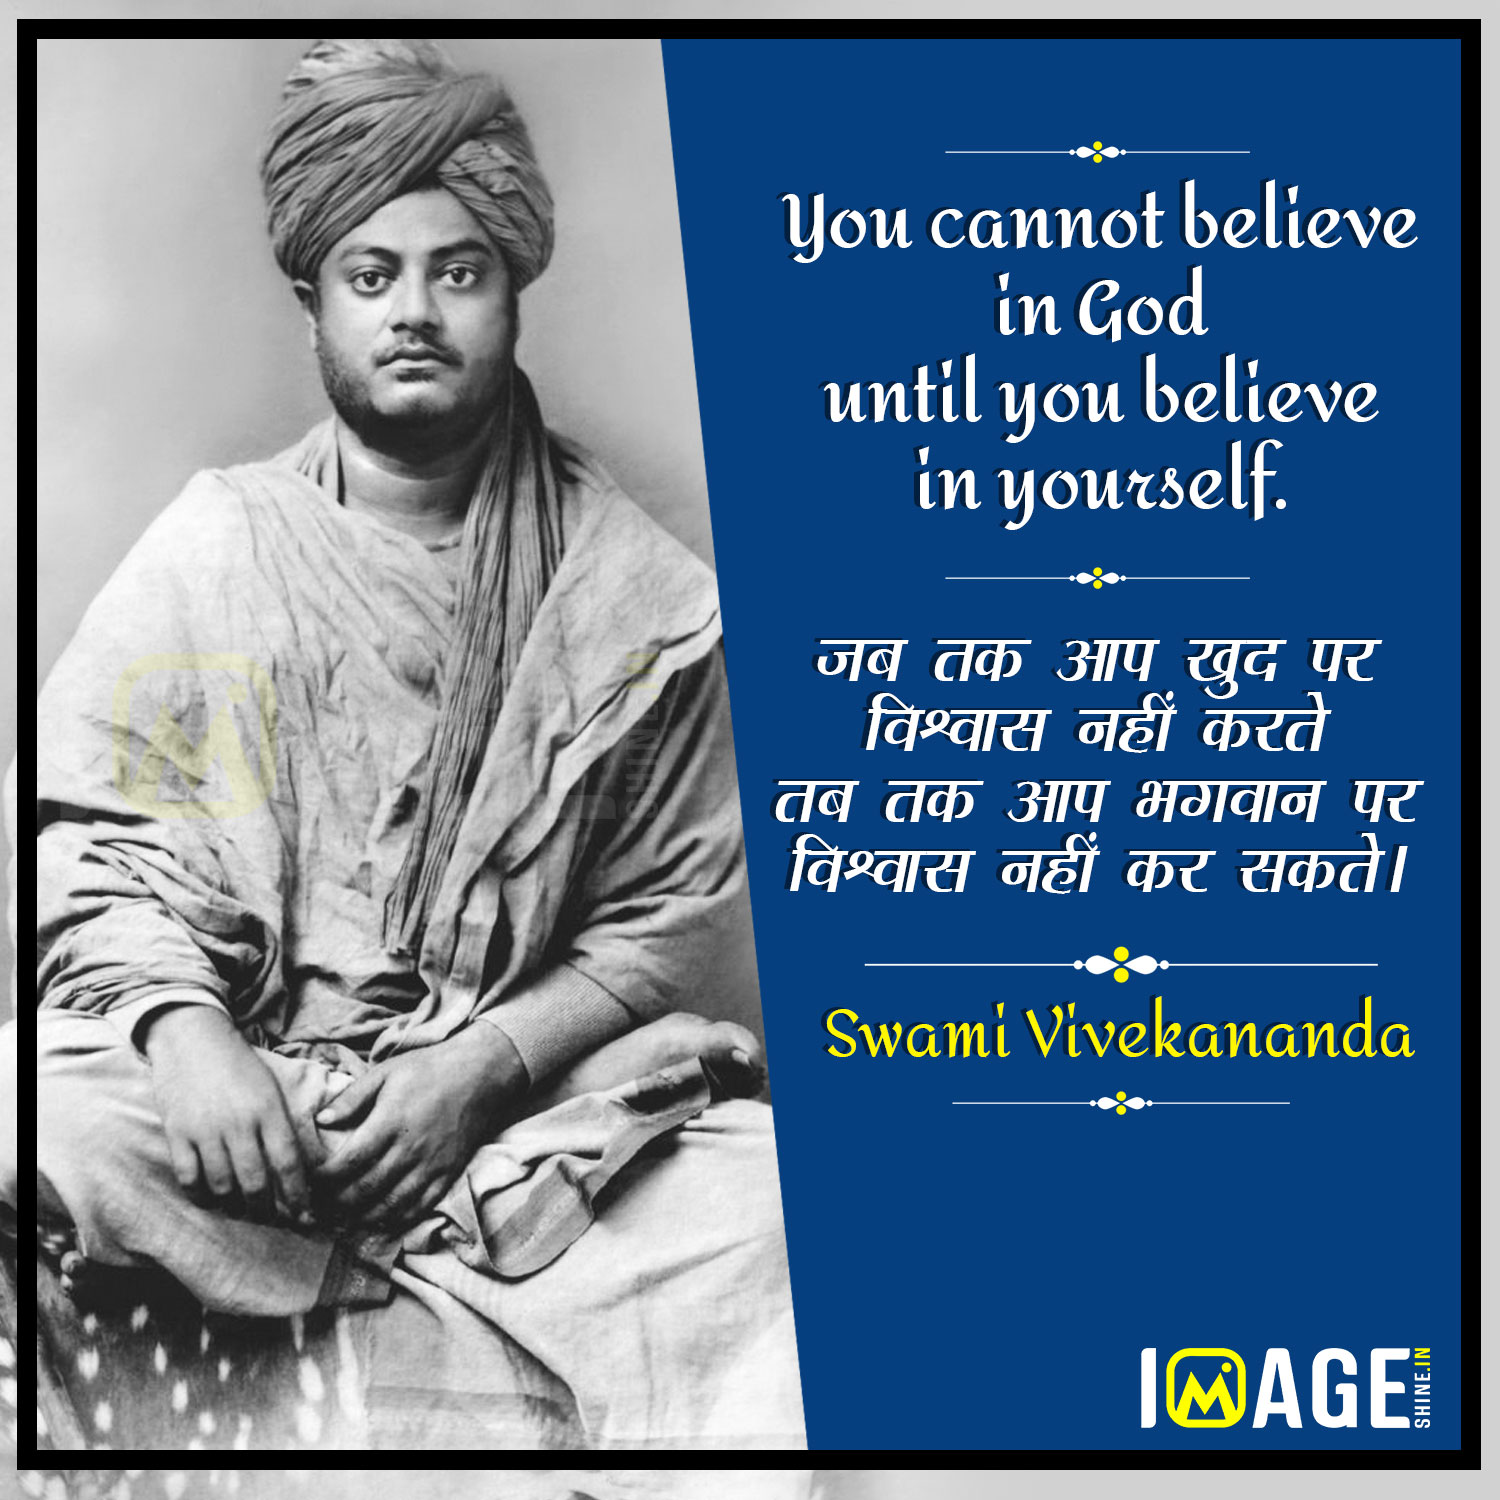 swami vivekananda quote photos